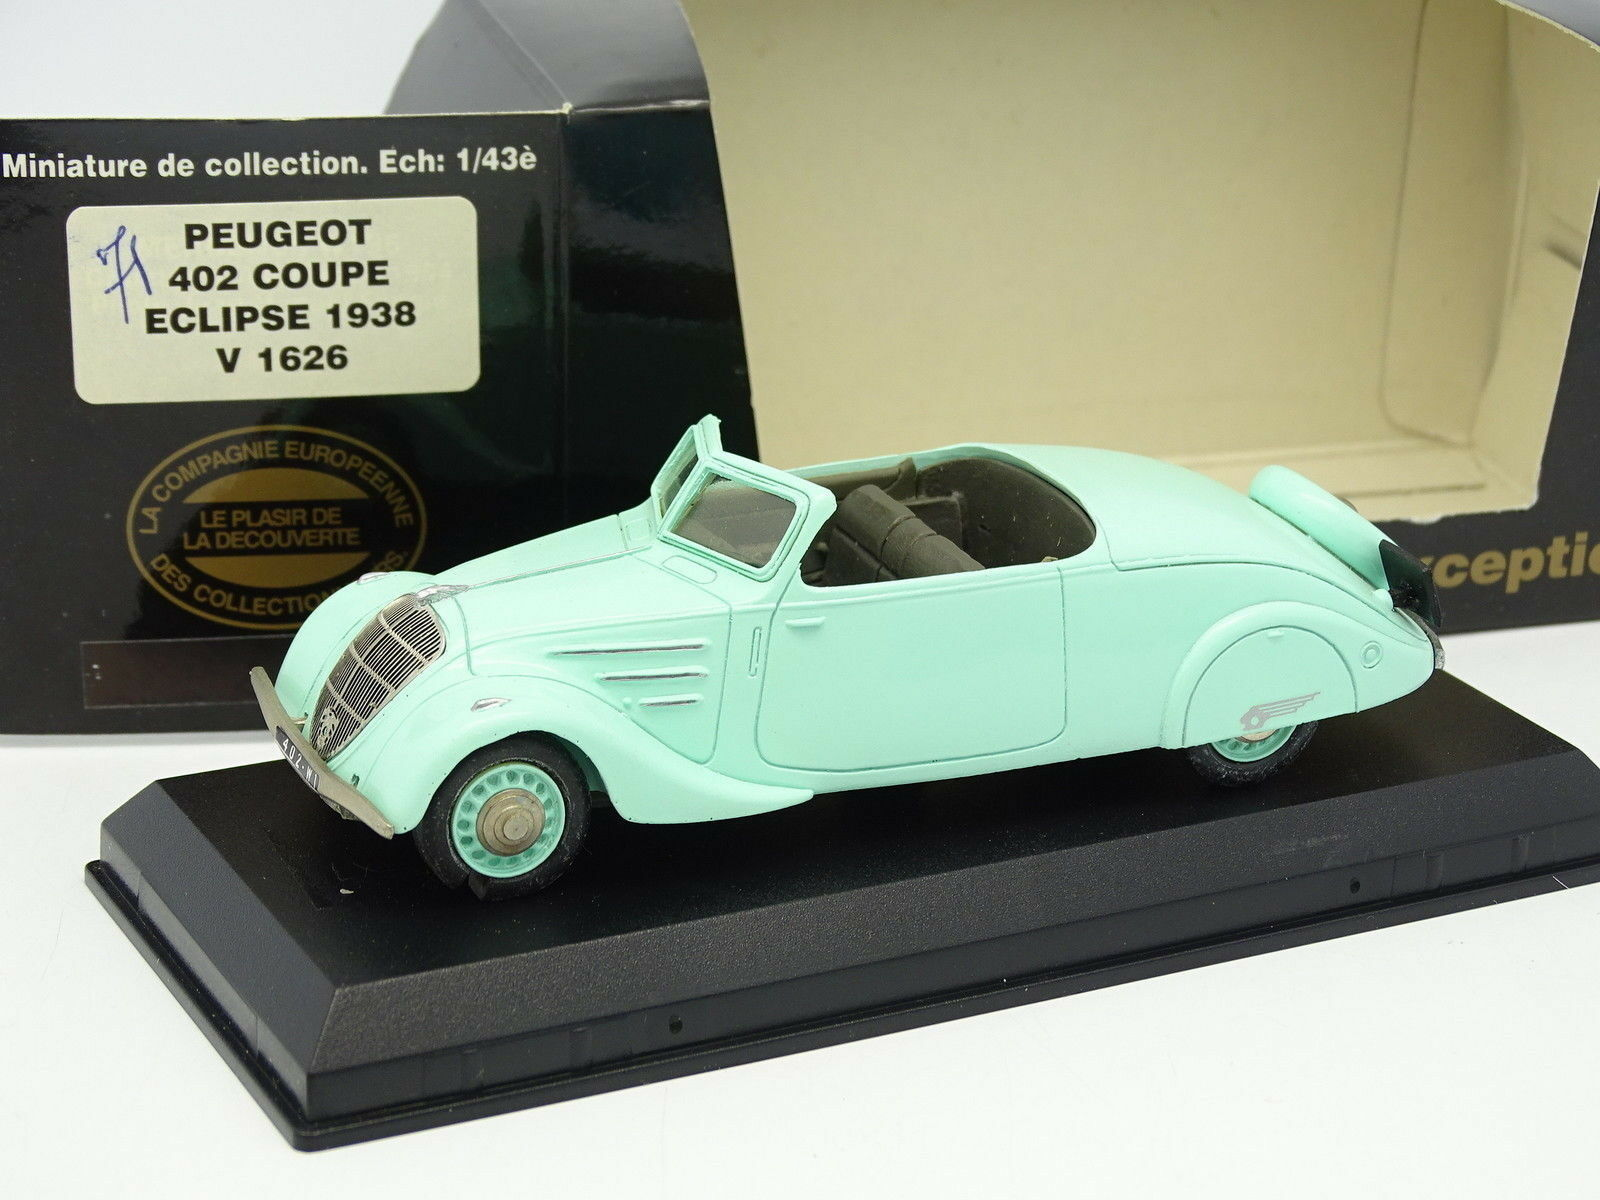 Elysee Harz 1 43 - peugeot 402 eclipse 1938 by cec